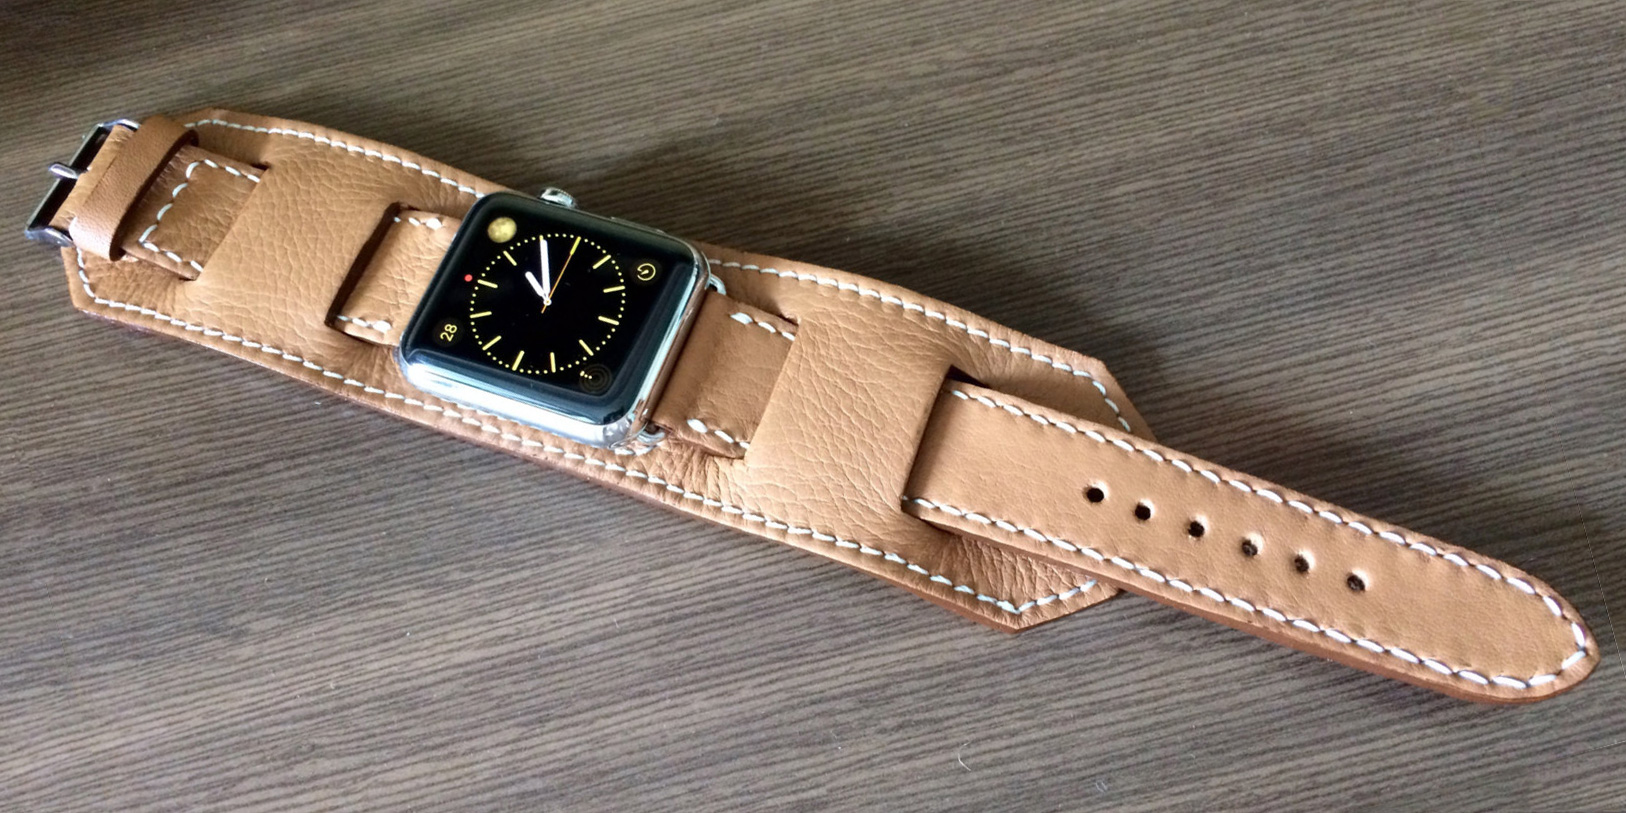 How To Get The Expensive Apple Watch Hermes Look For Under 100 9to5mac